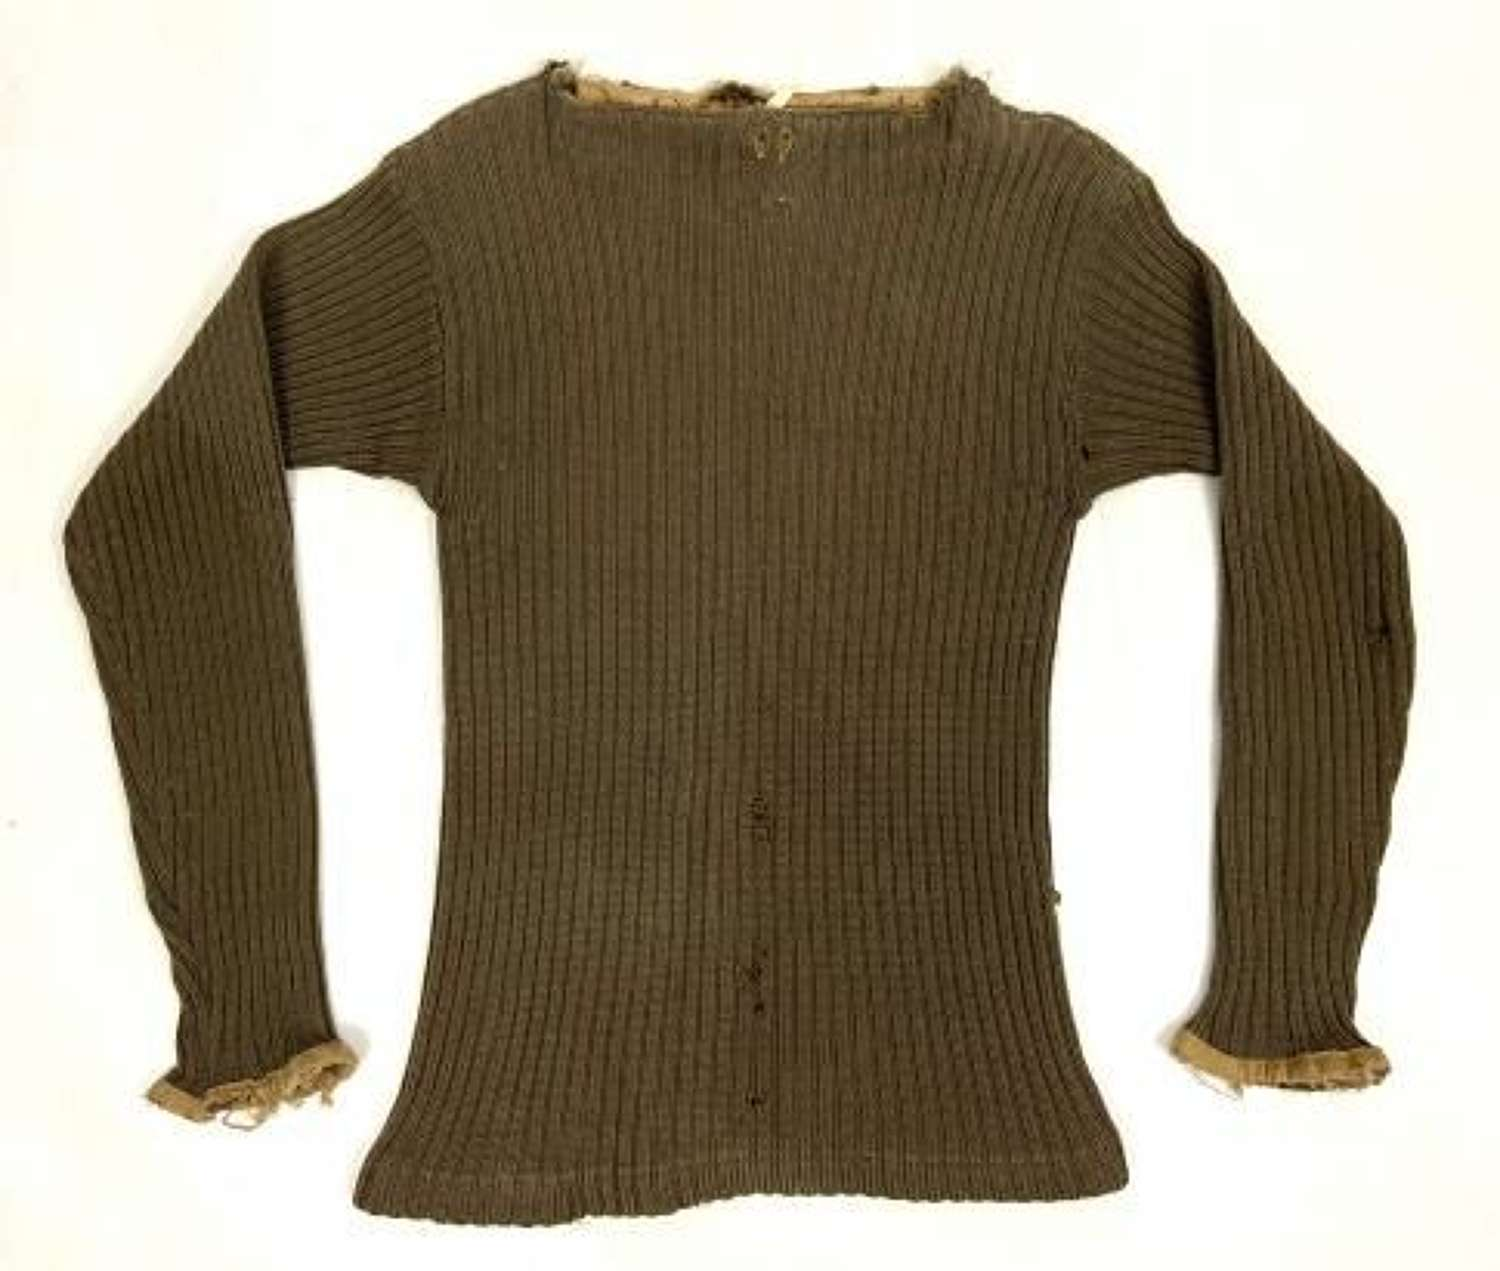 Original 1953 Dated British Army 'Jumpers, Heavy' - Size 3.